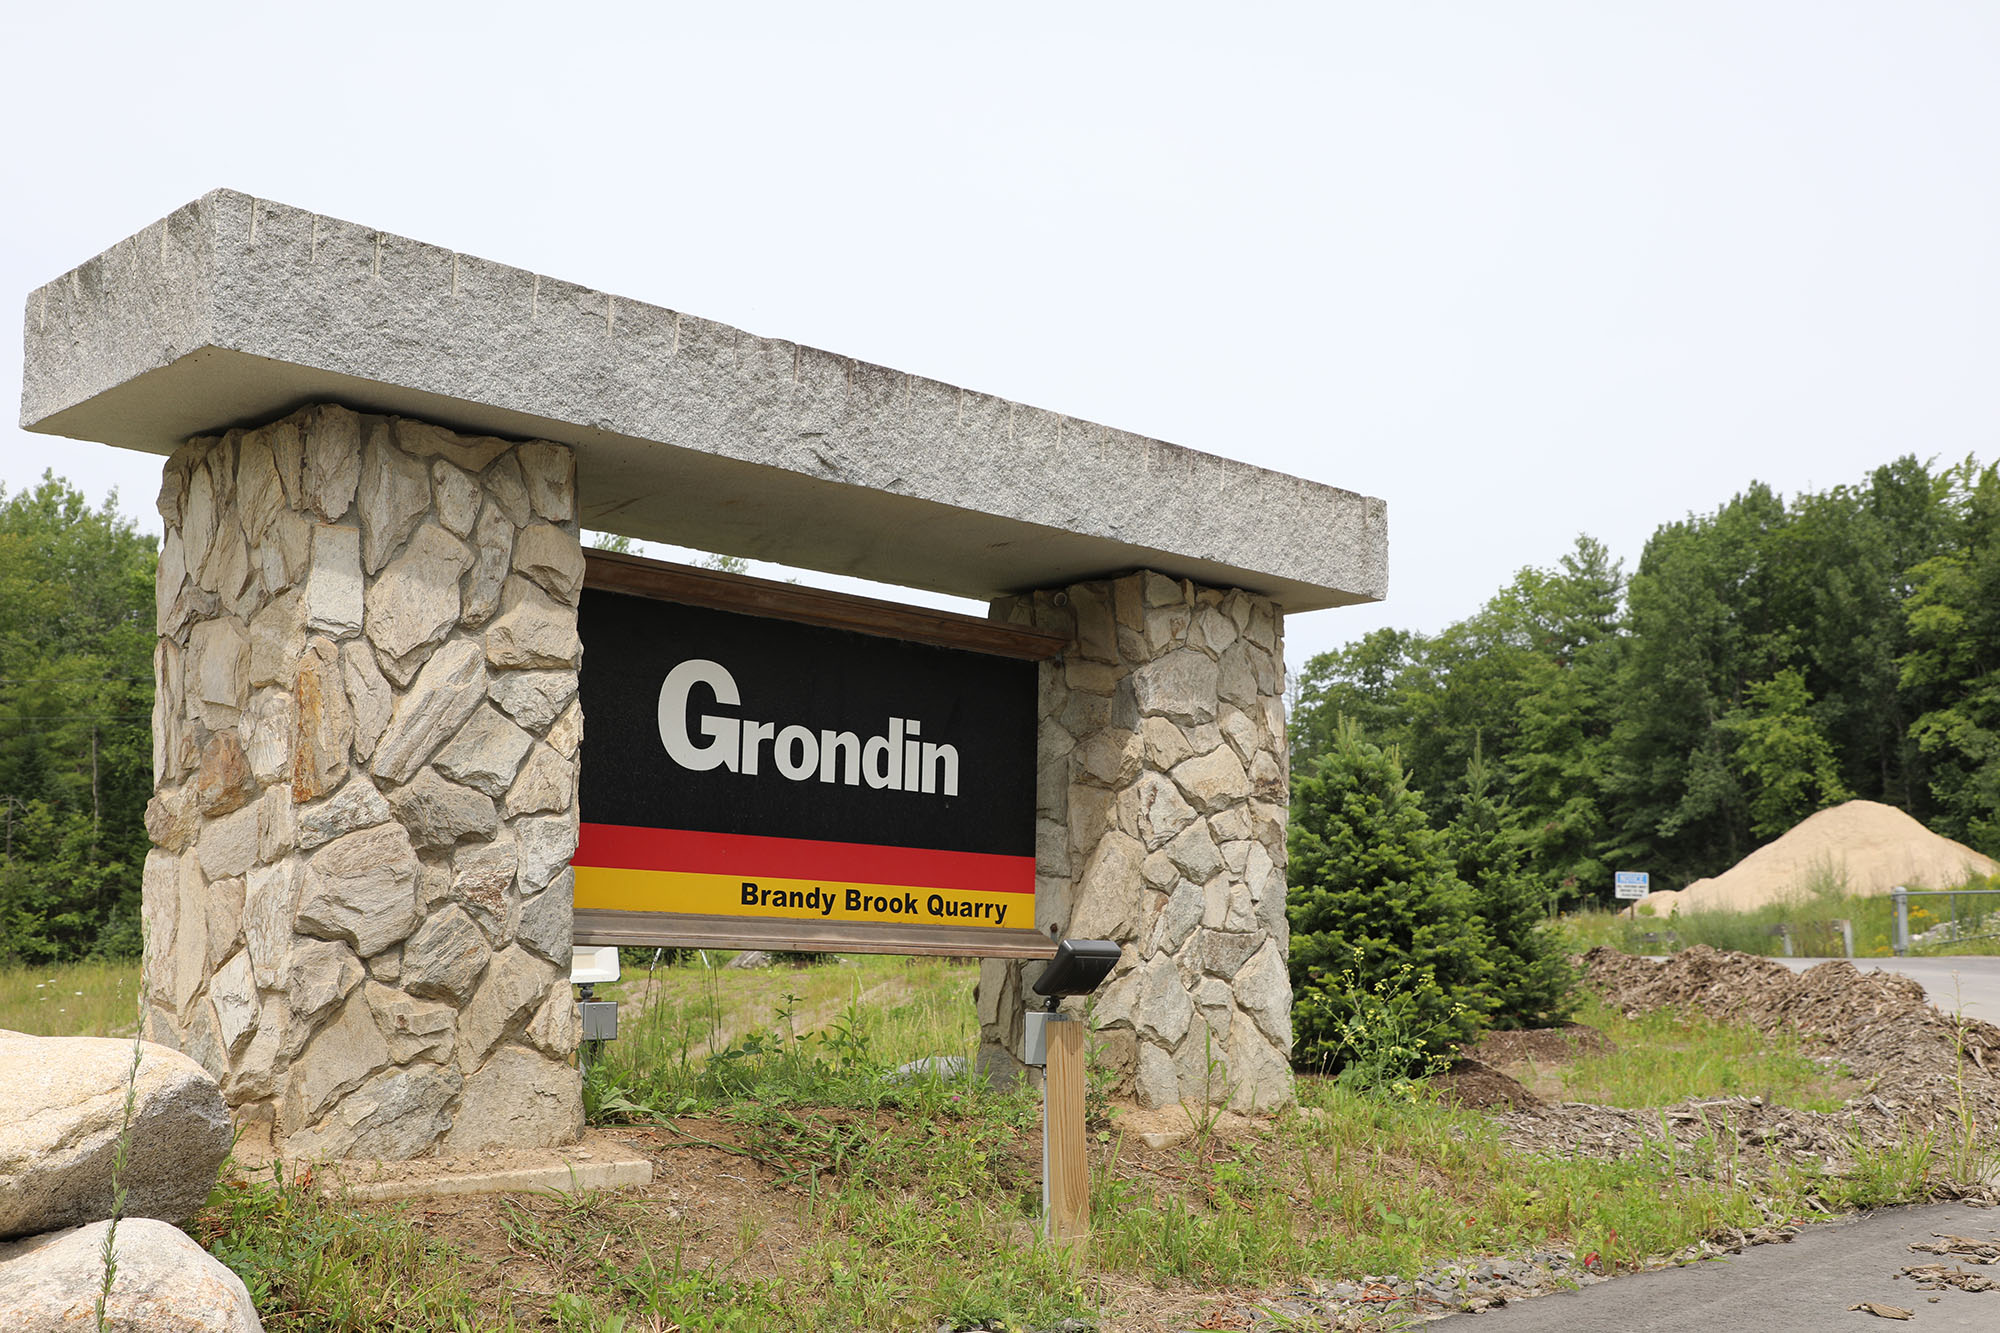 Grondin Signage outside the Quarry in Maine